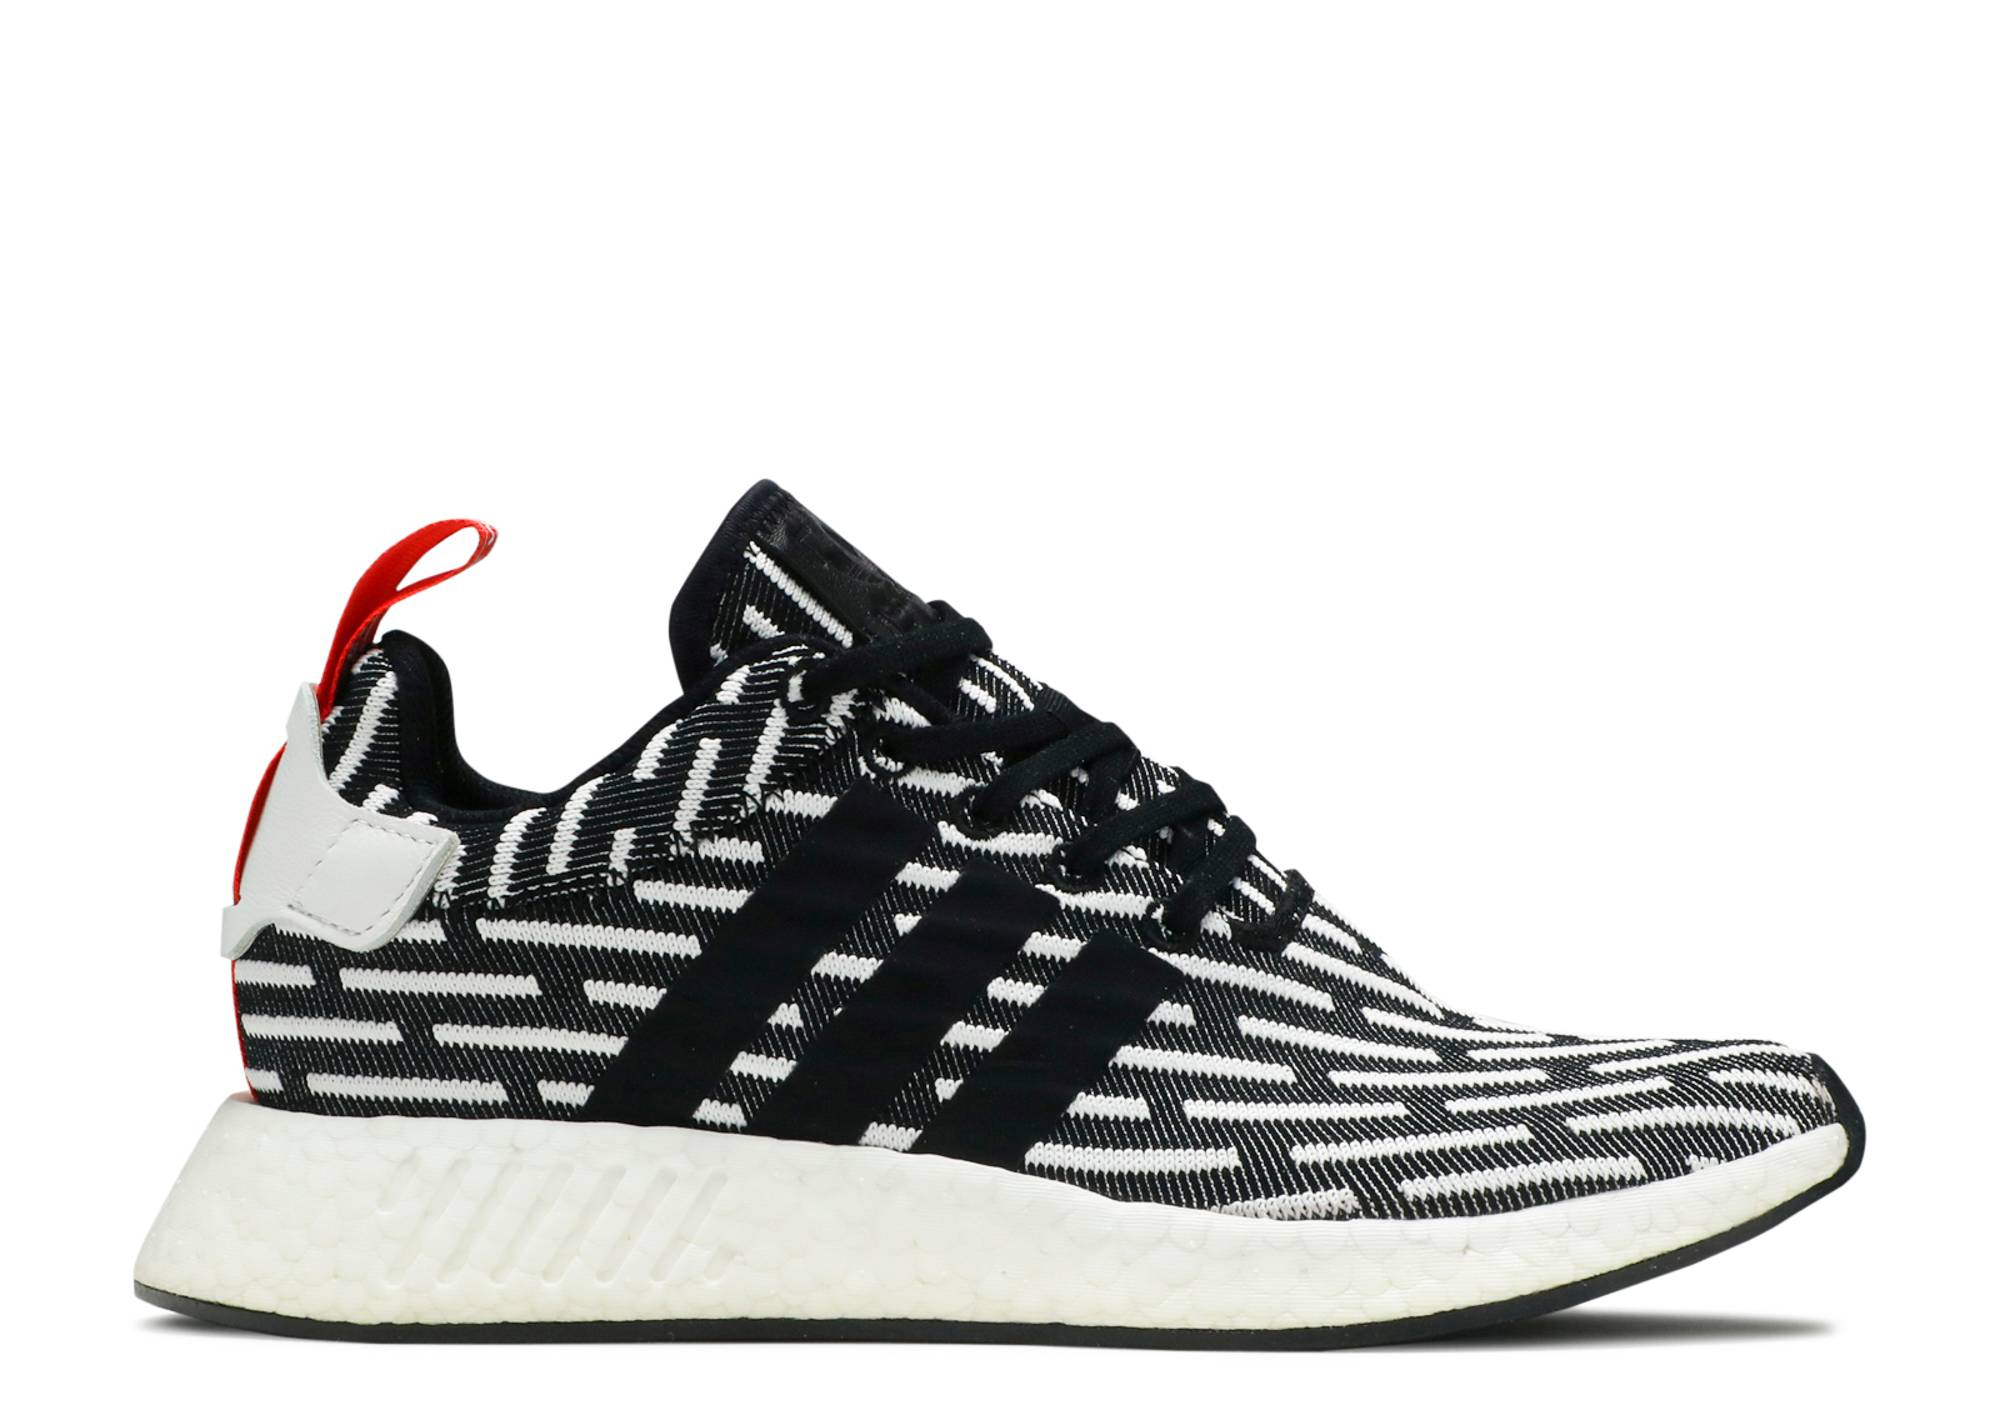 Adidas NMD R2 PK boost running shoes black and white red